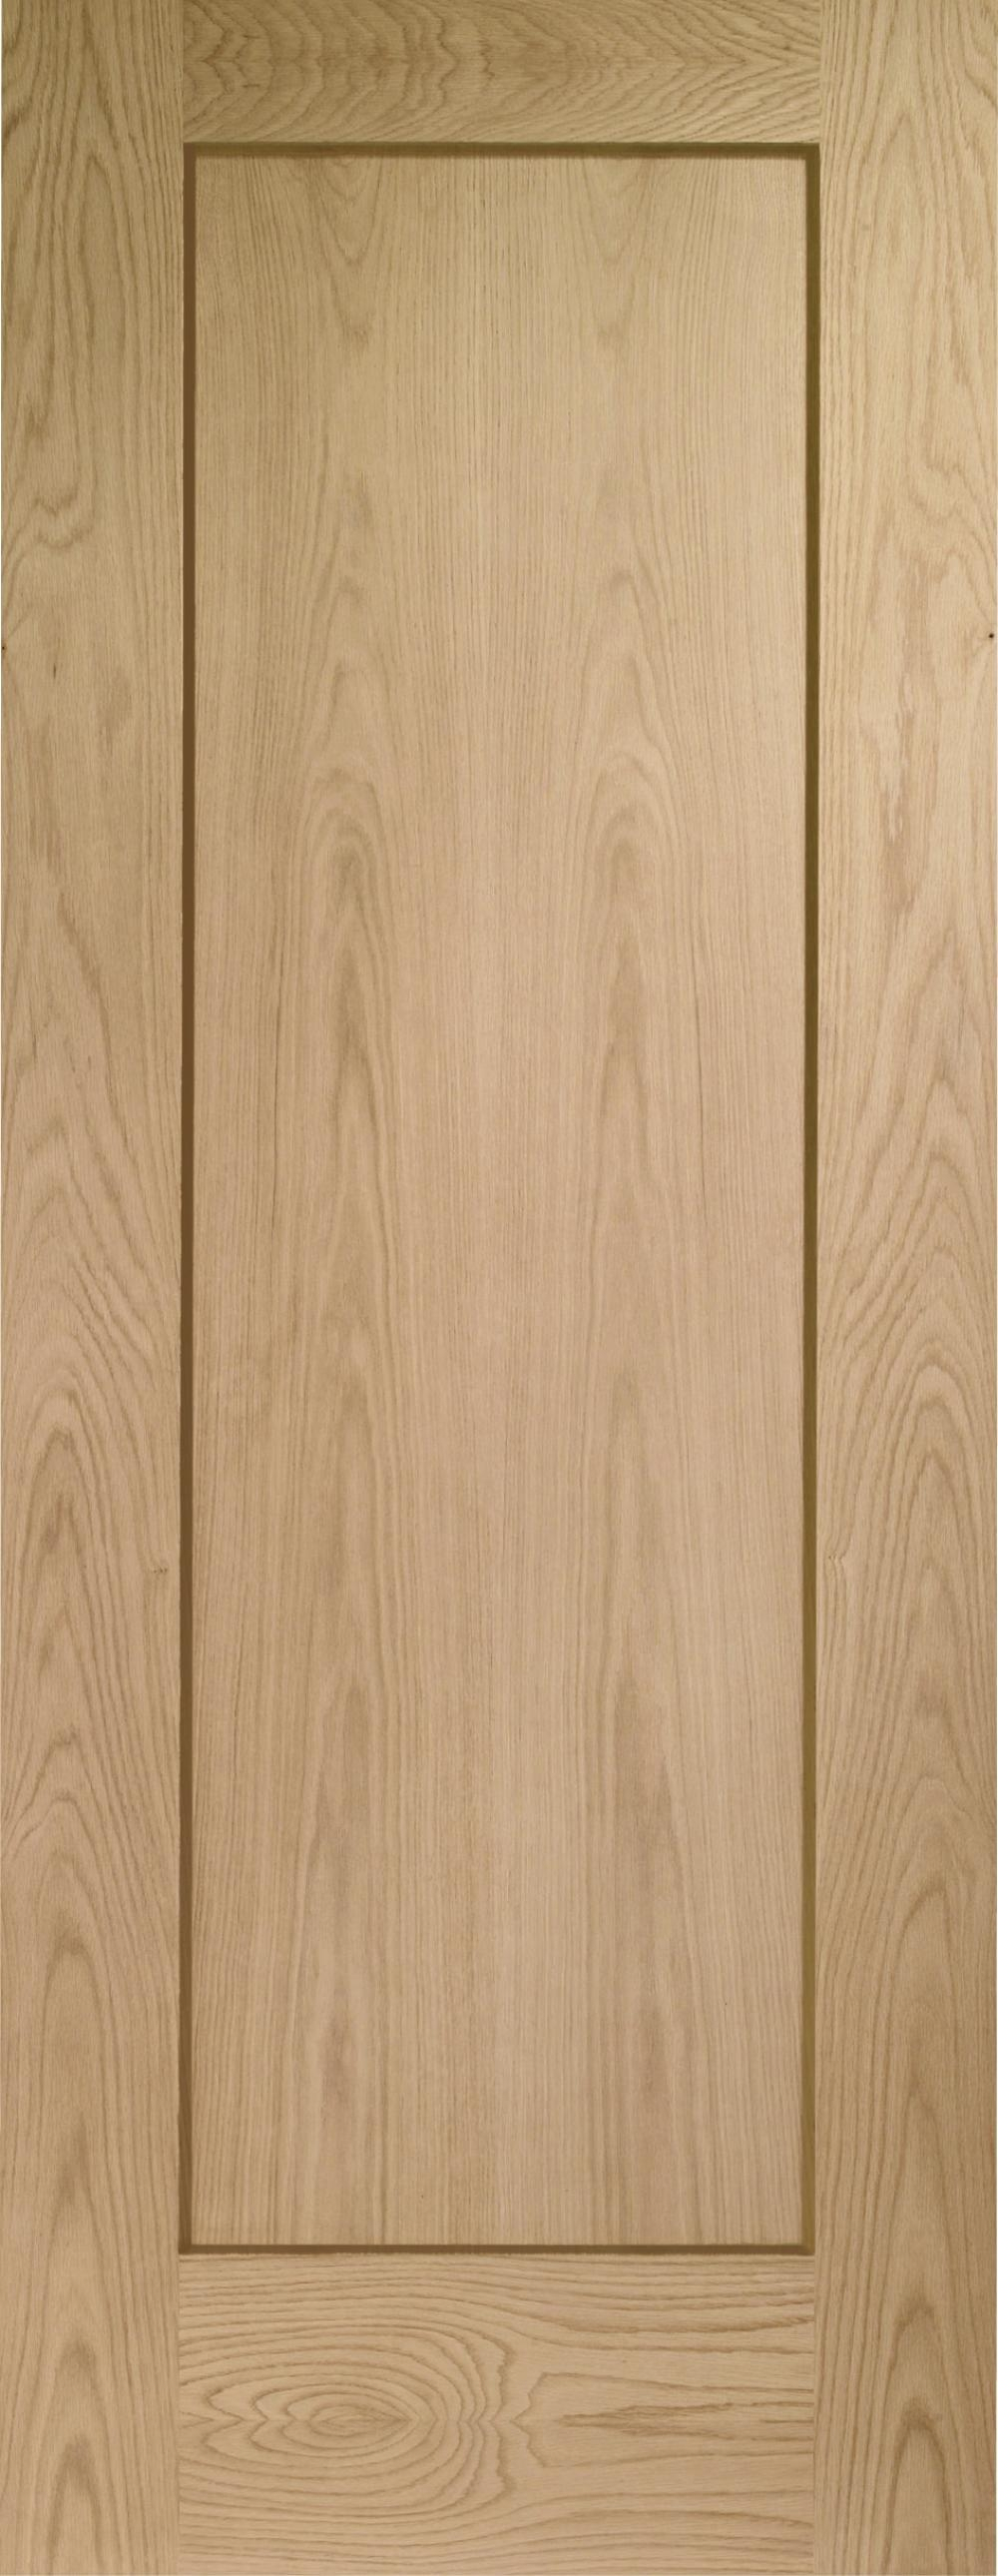 Pattern 10 Oak  - PREFINISHED:  Image